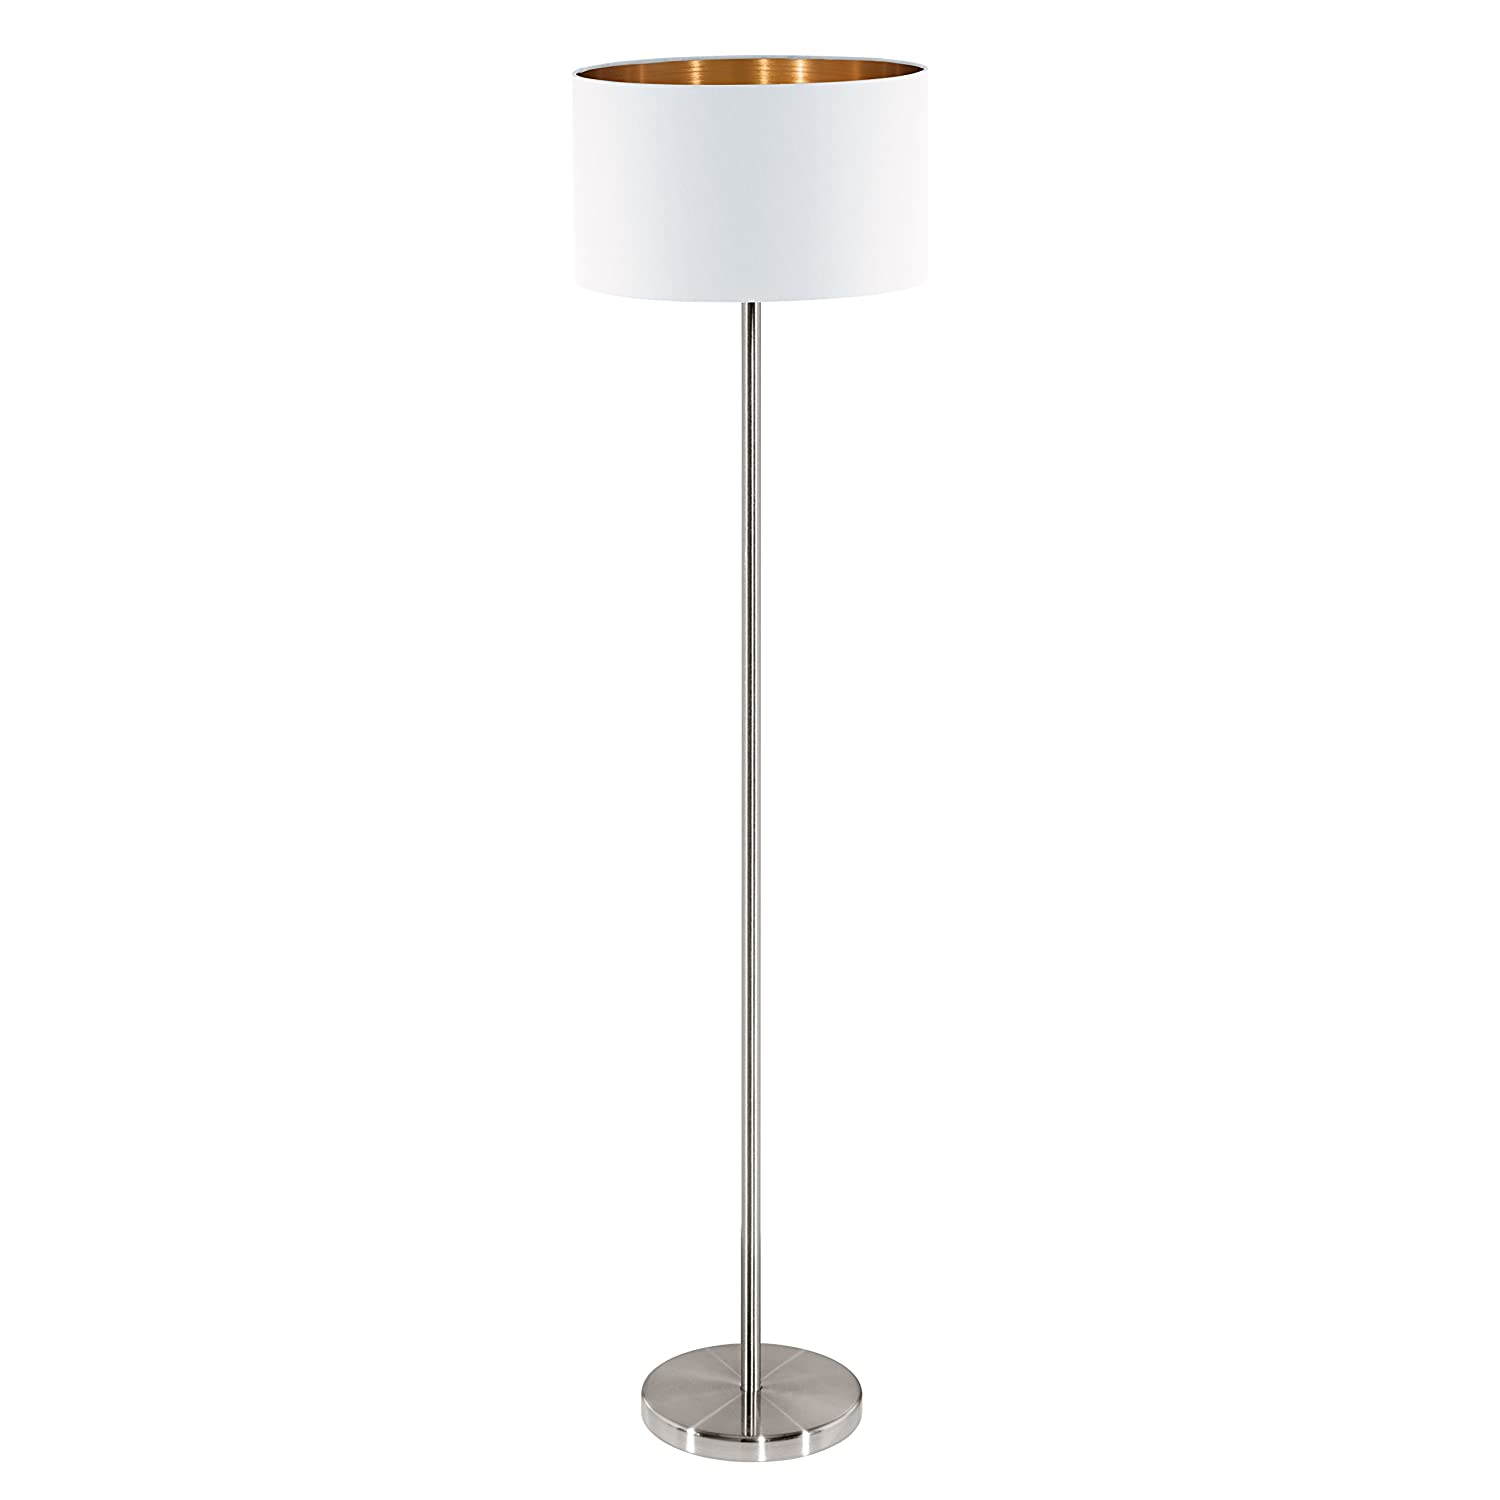 EGLO E27 White/Copper Fabric Floor Lamp with Foot Switch 'PASTERI' [Energy Class E] 95174